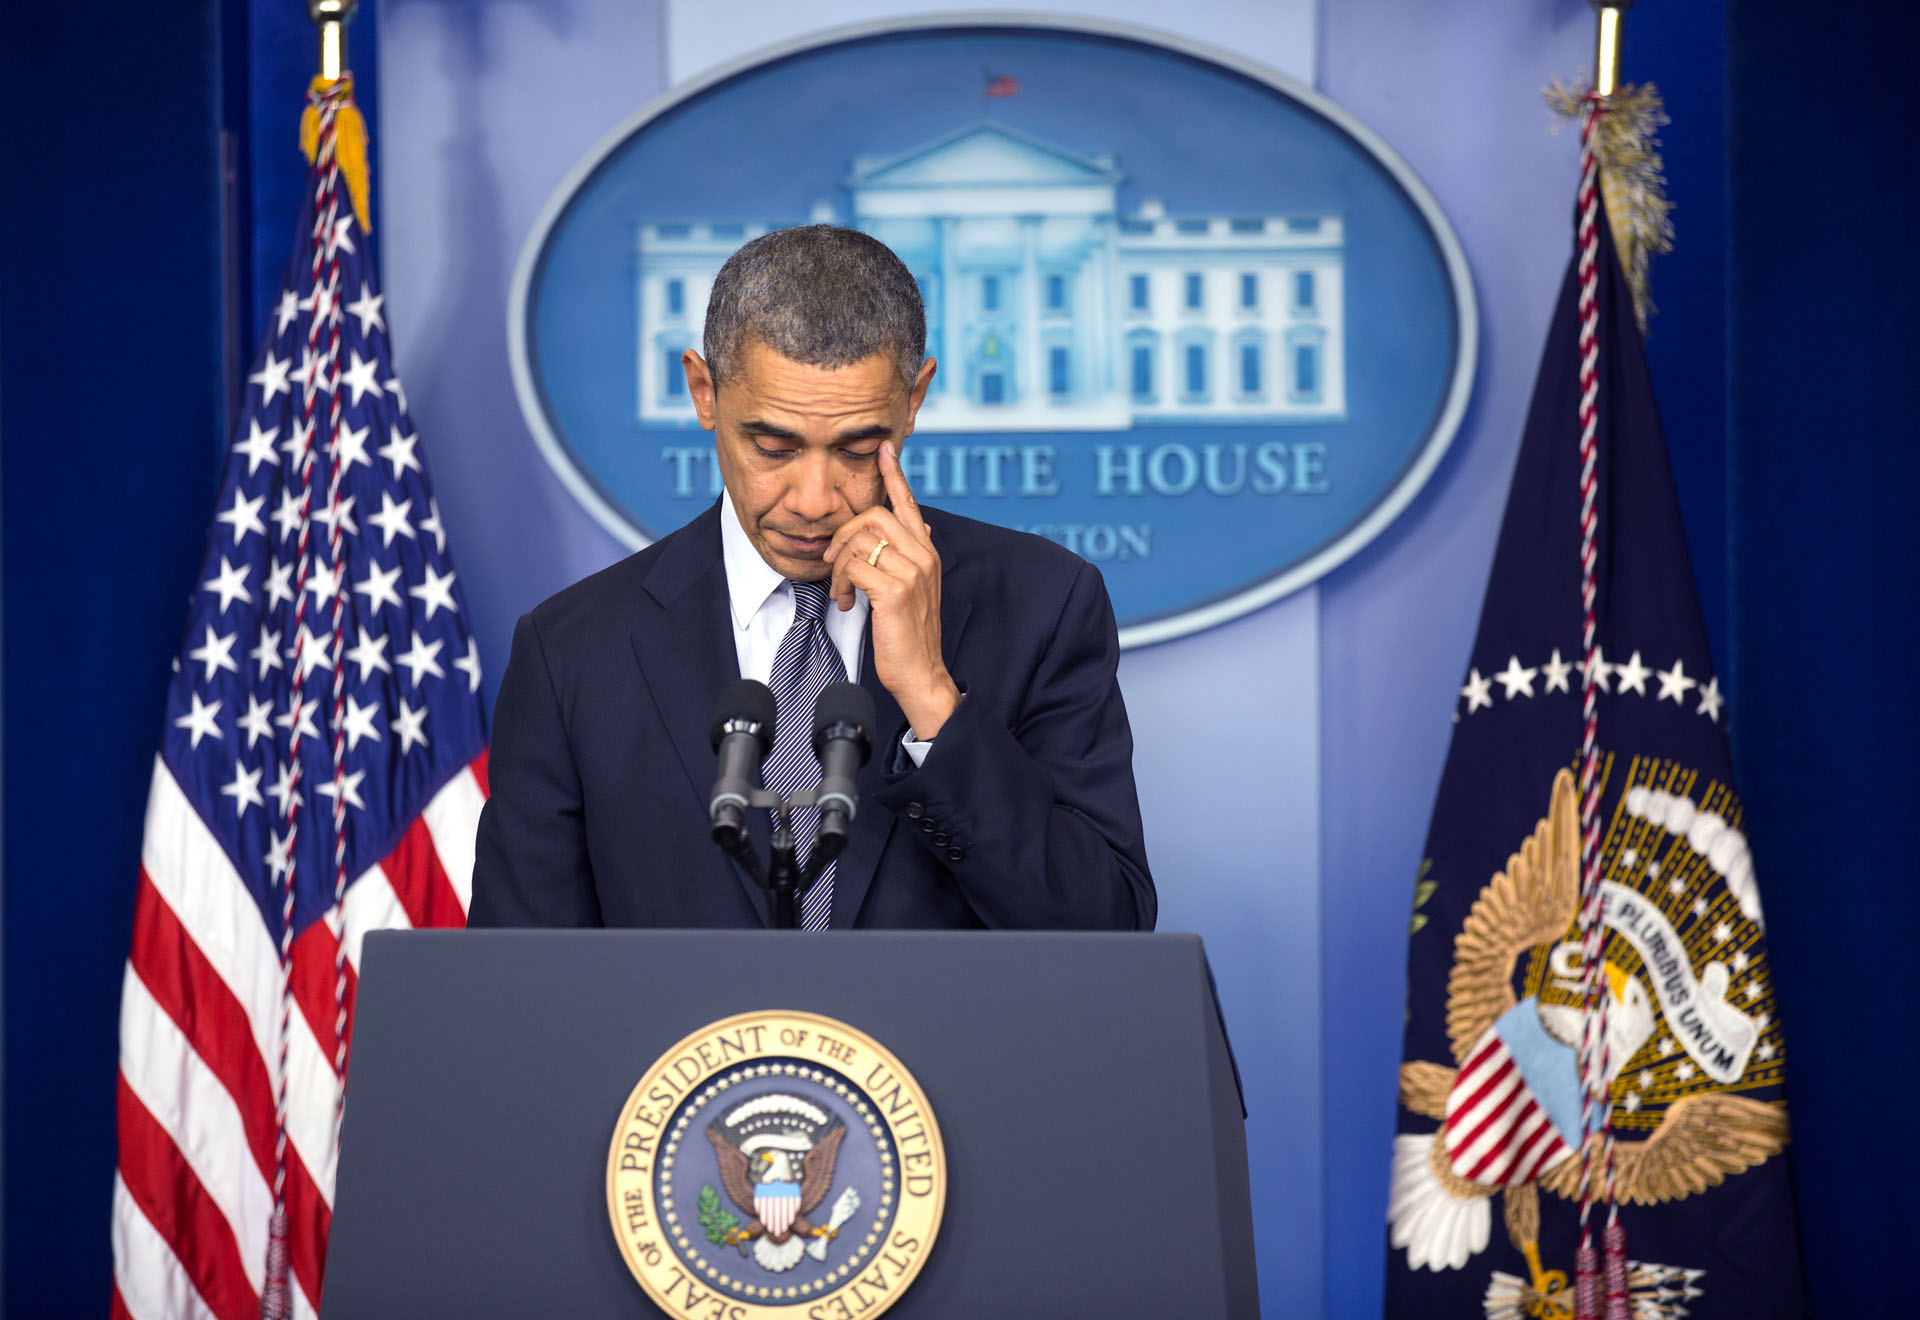 President Obama Speaks on the Shooting in Connecticut